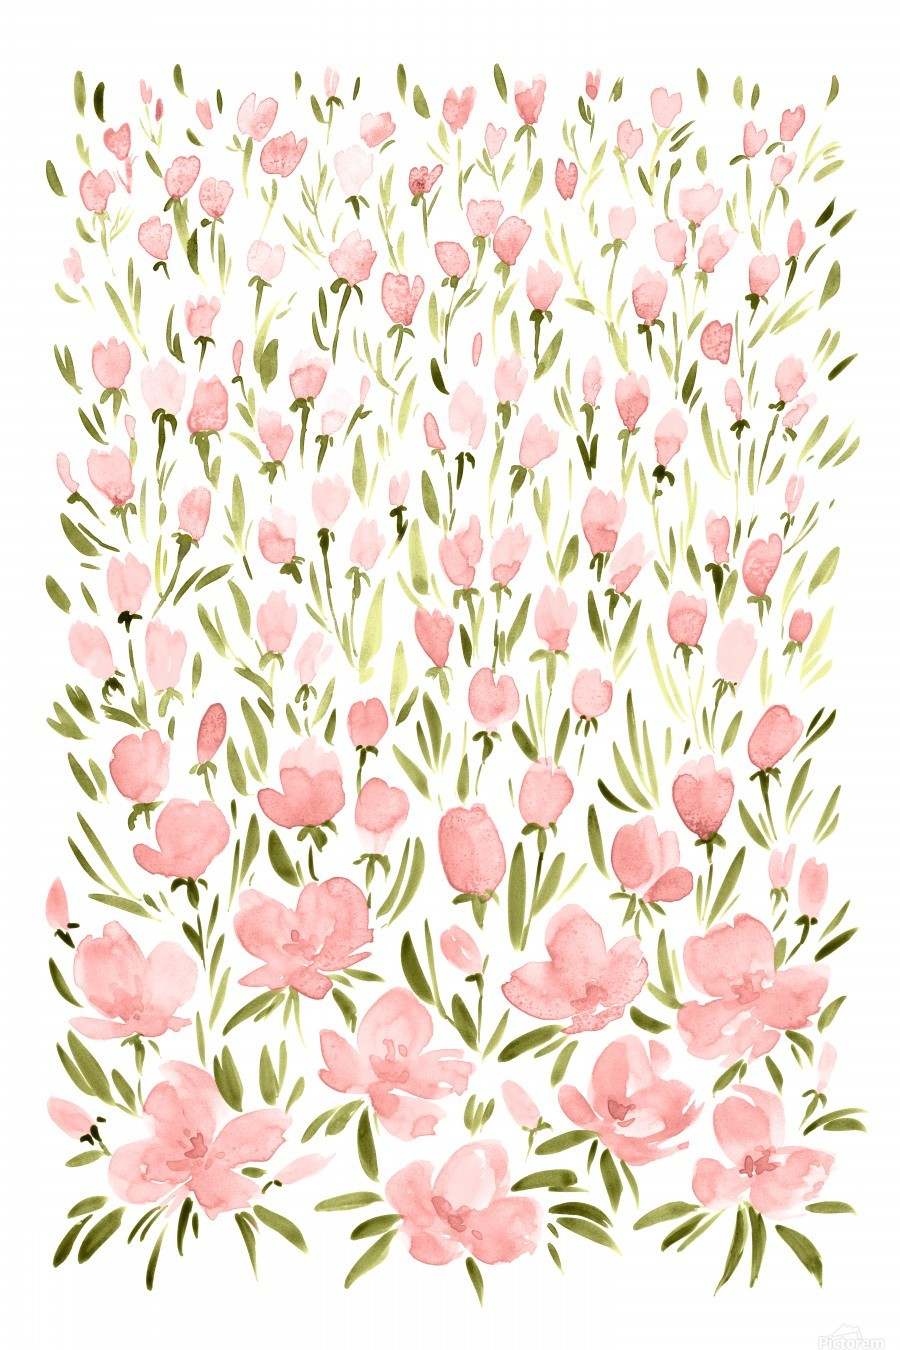 Field of pink watercolor flowers by blursbyai  Print